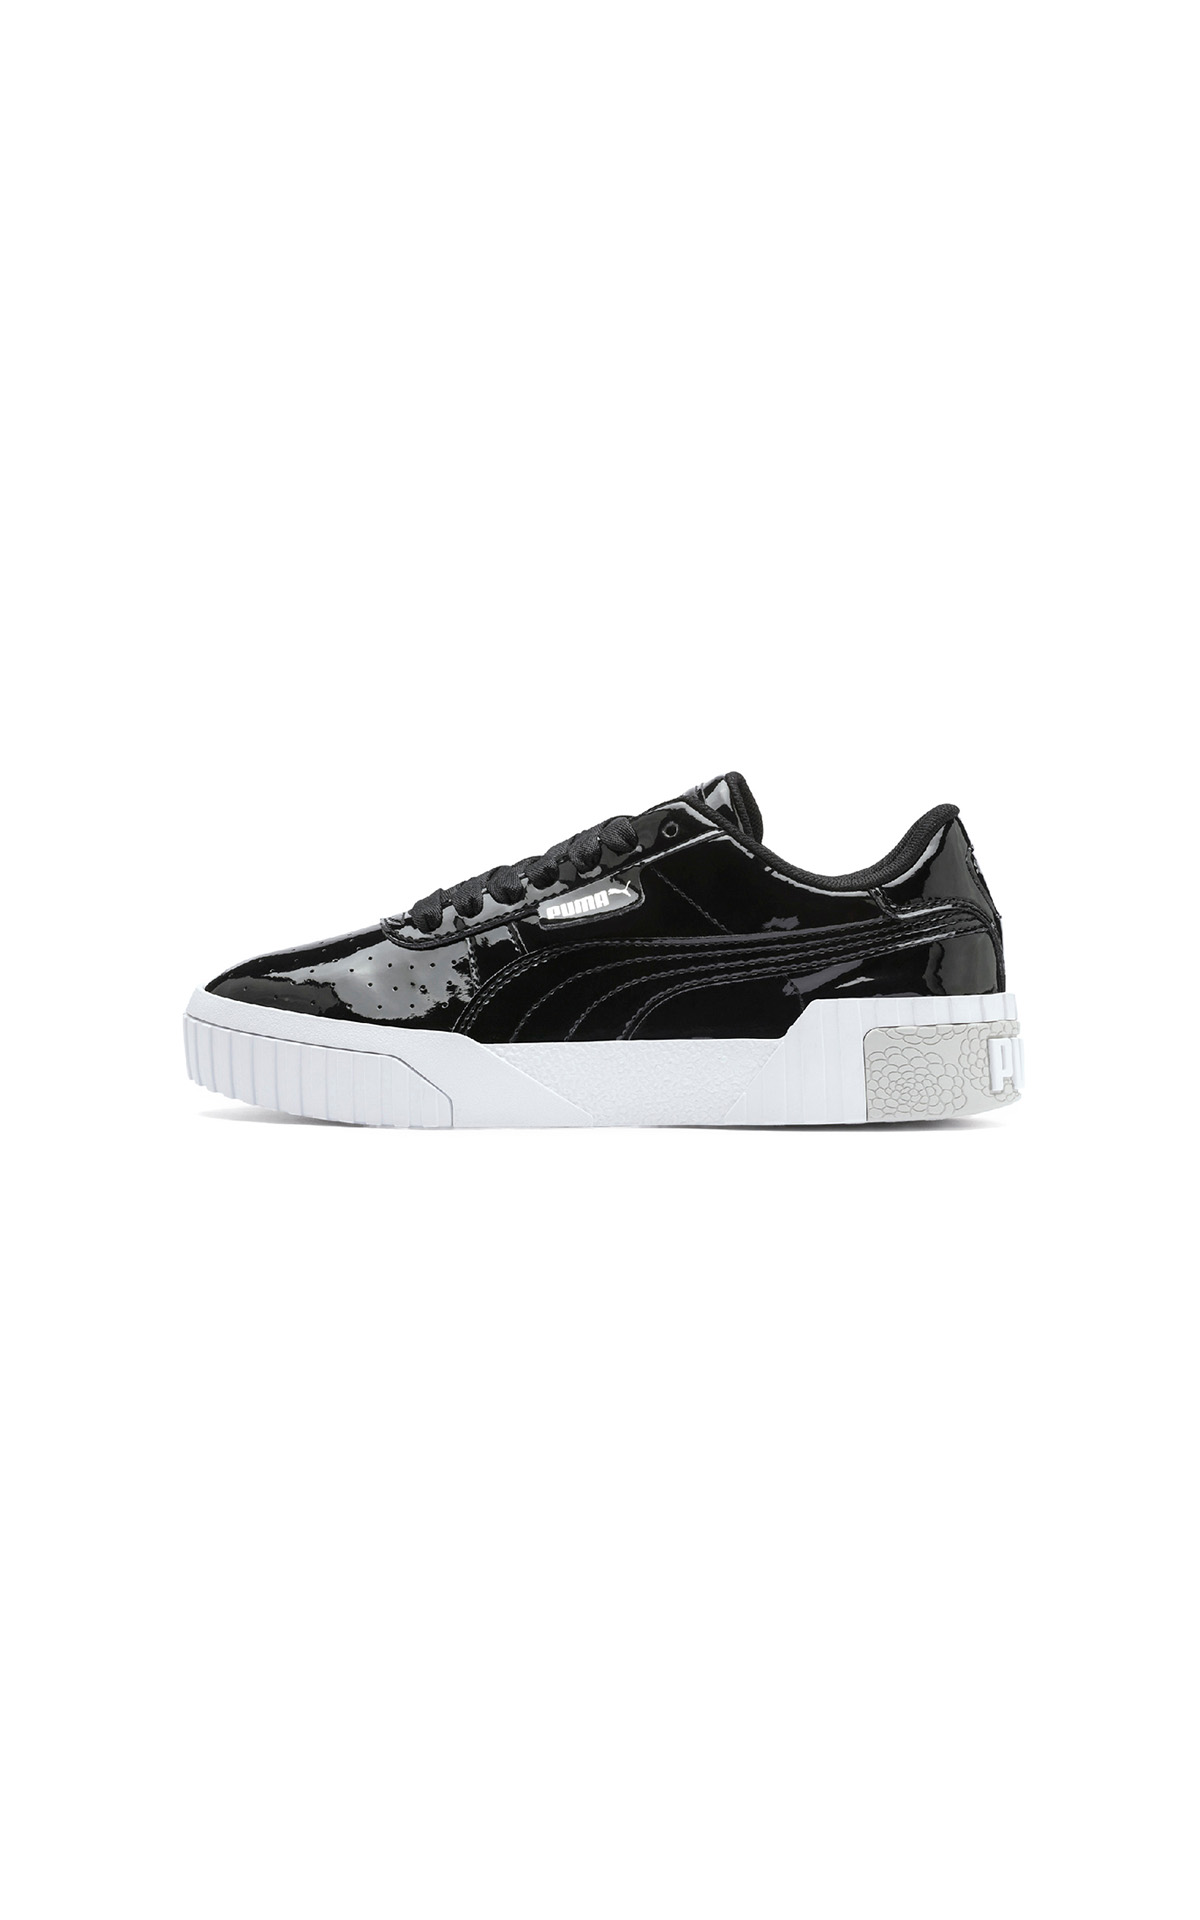 PUMA Cali patent junior in black and white at The Bicester Village Shopping Collection